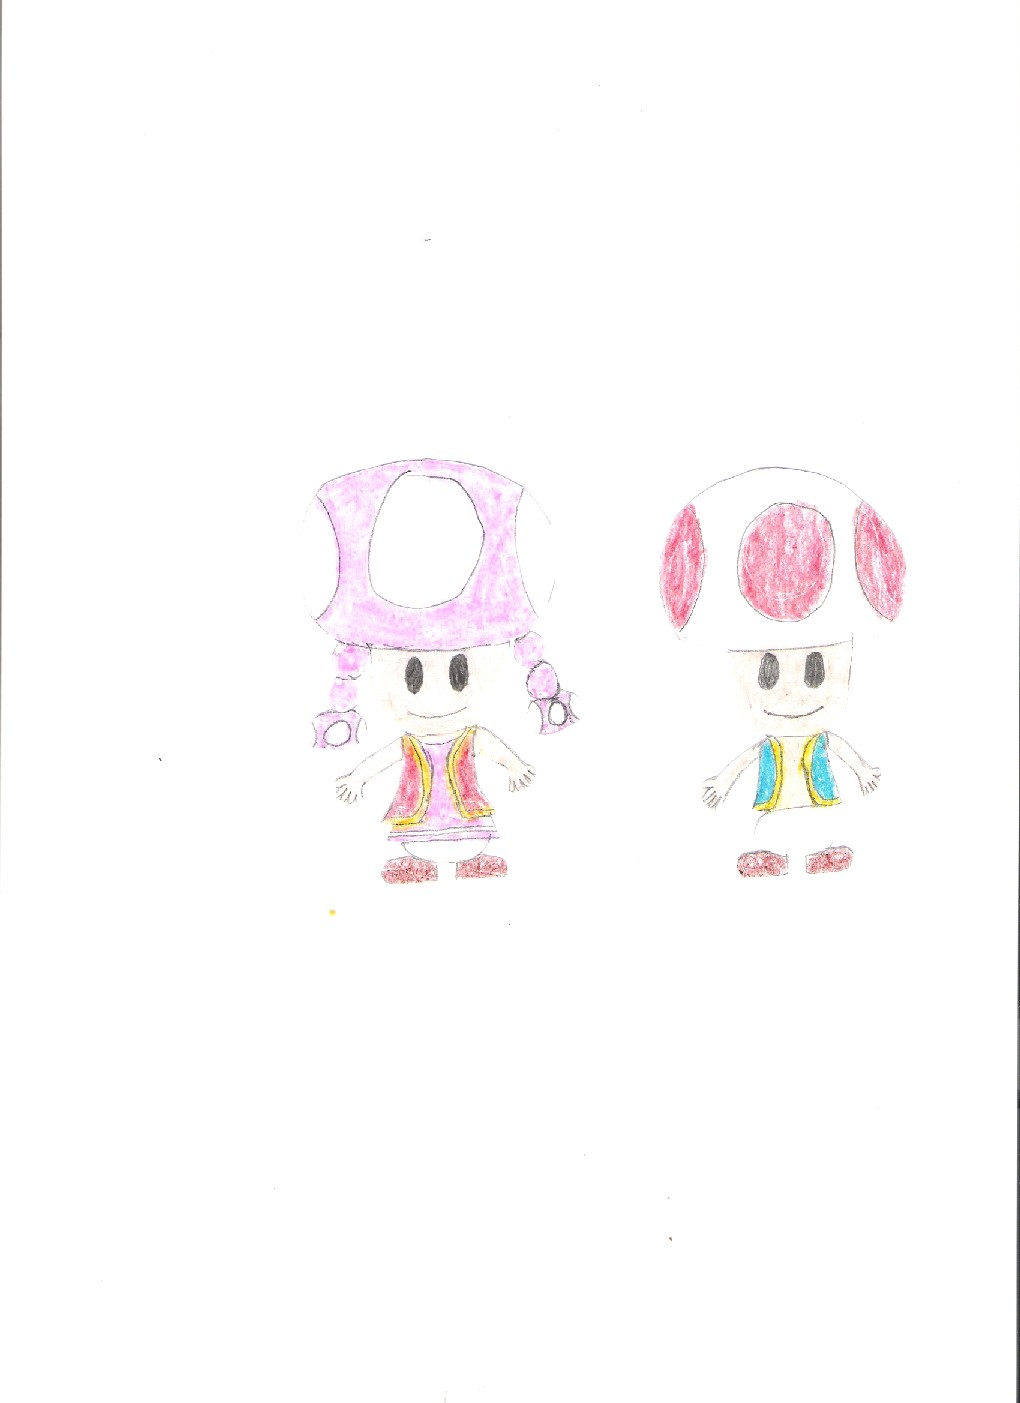 Toad and Toadette by Coolstra